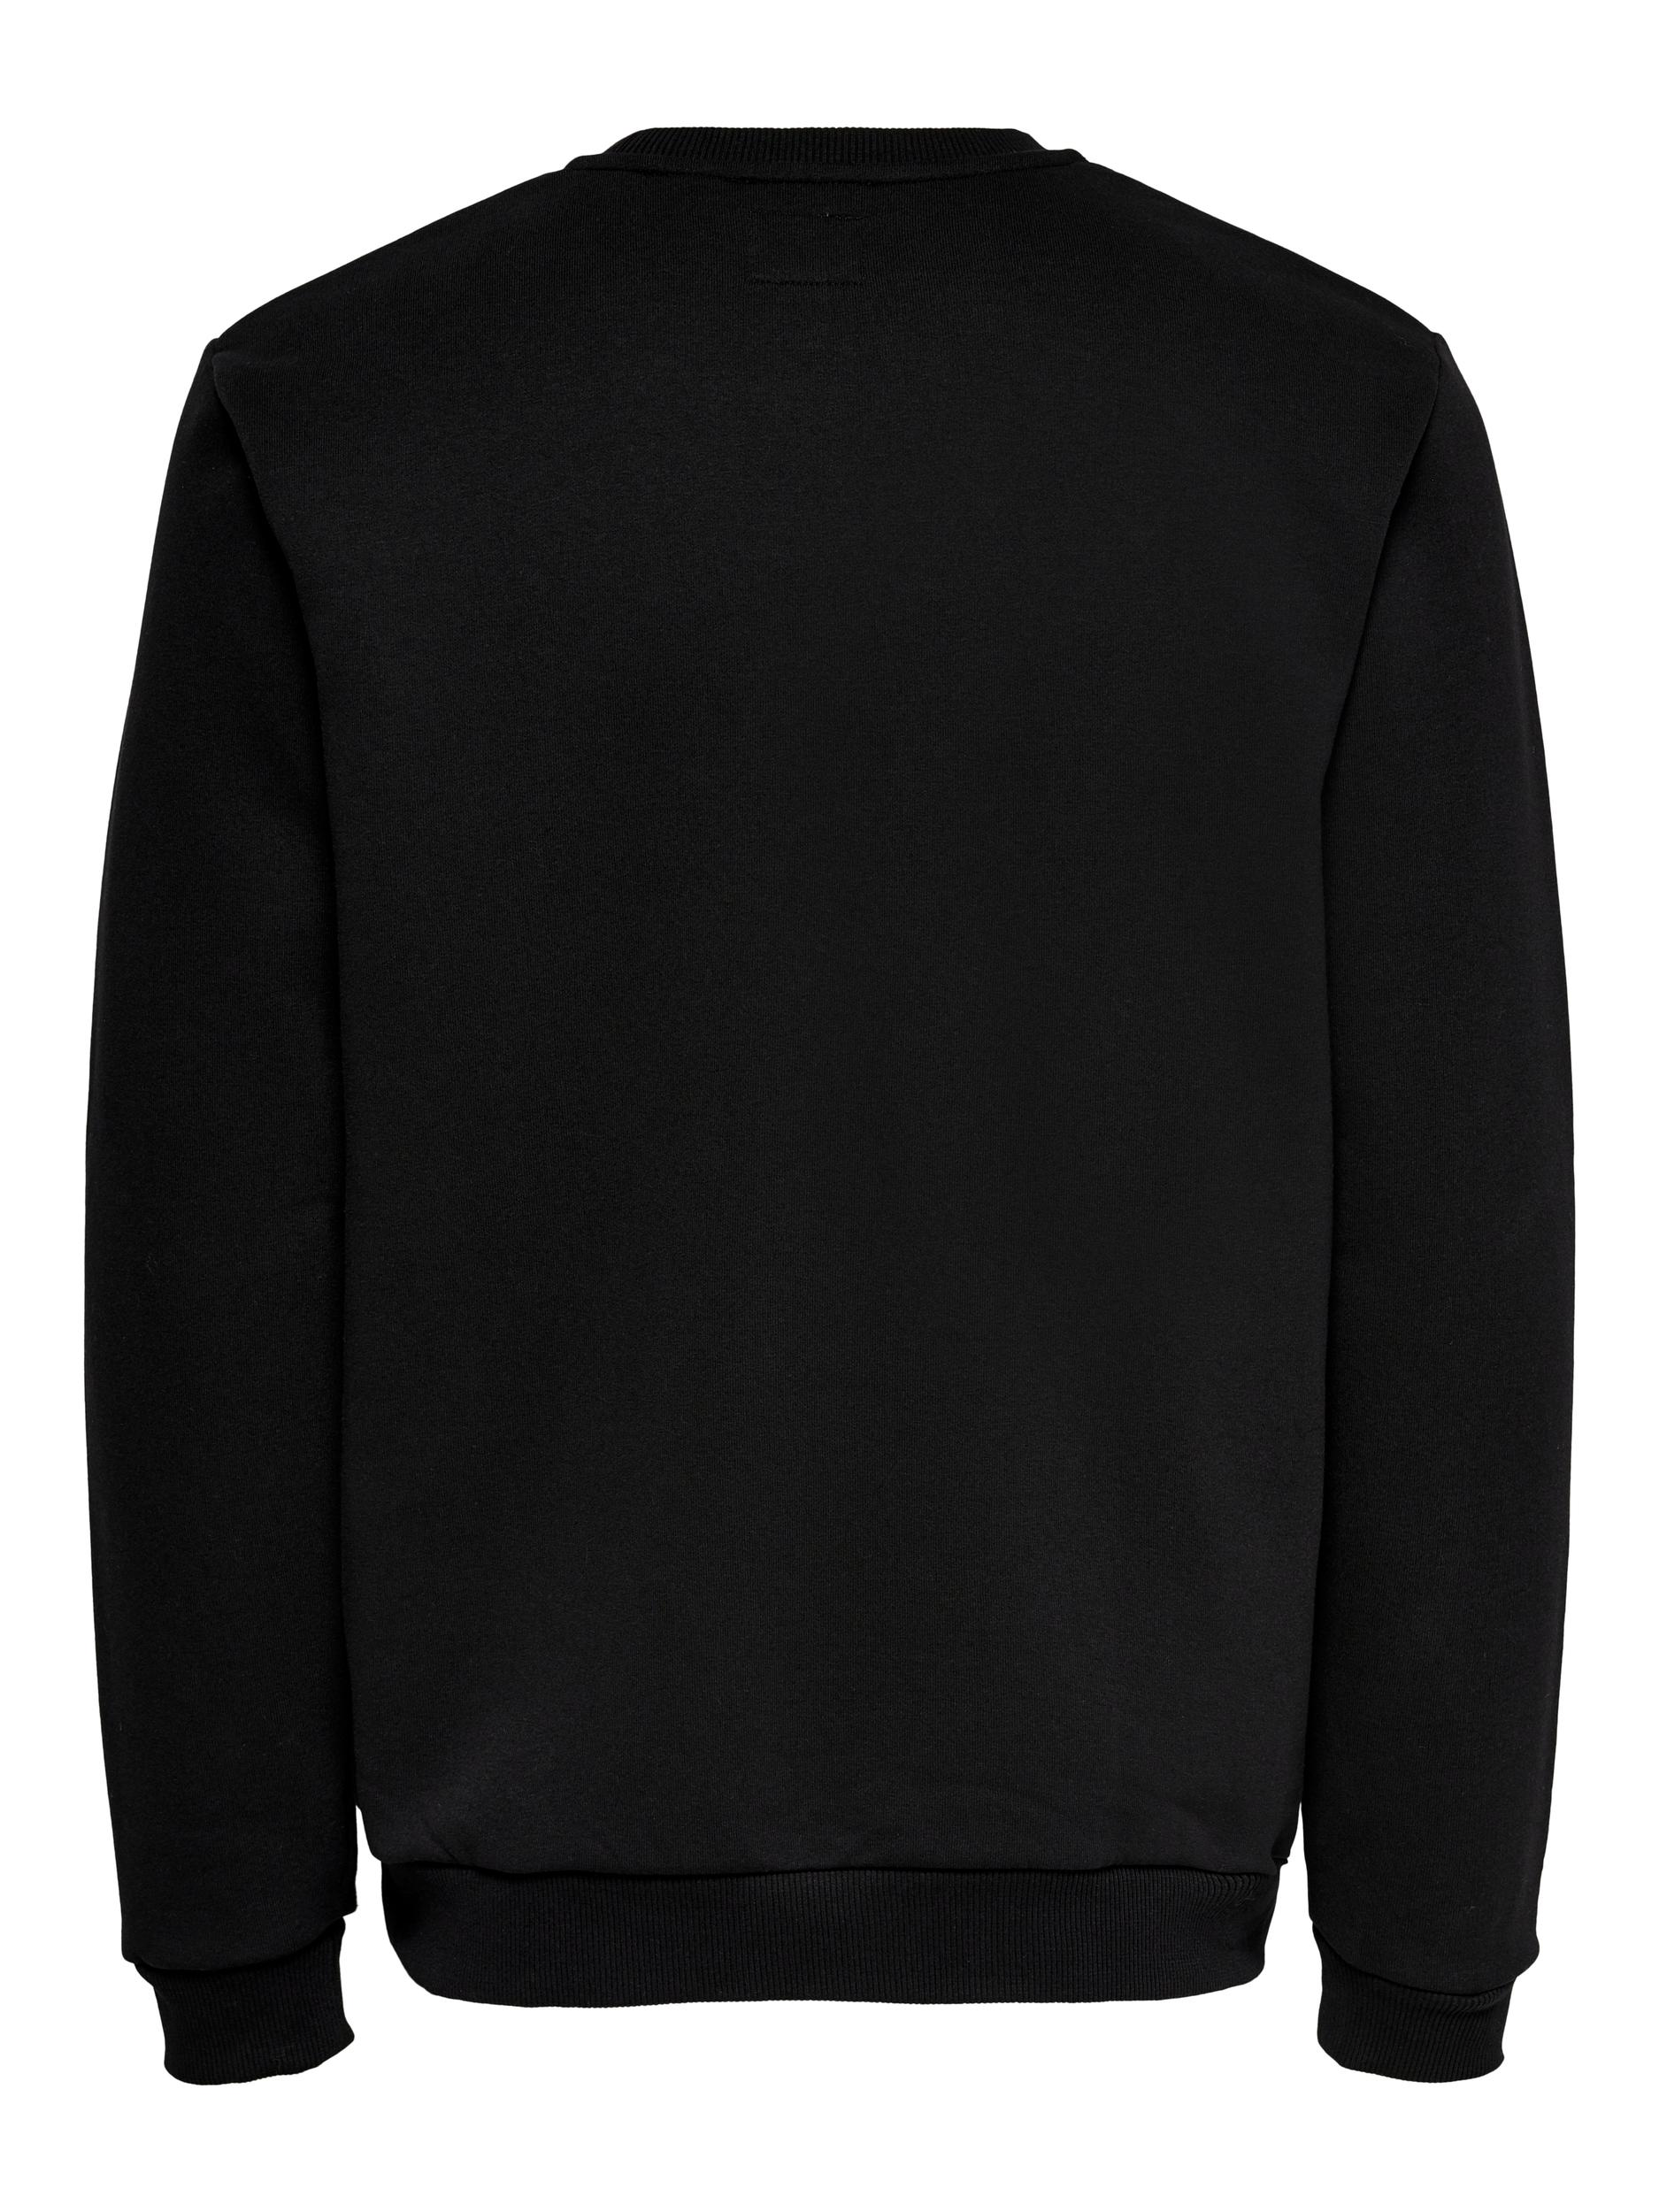 Only & Sons Ceres Life Crew Neck sweatshirt, black, small